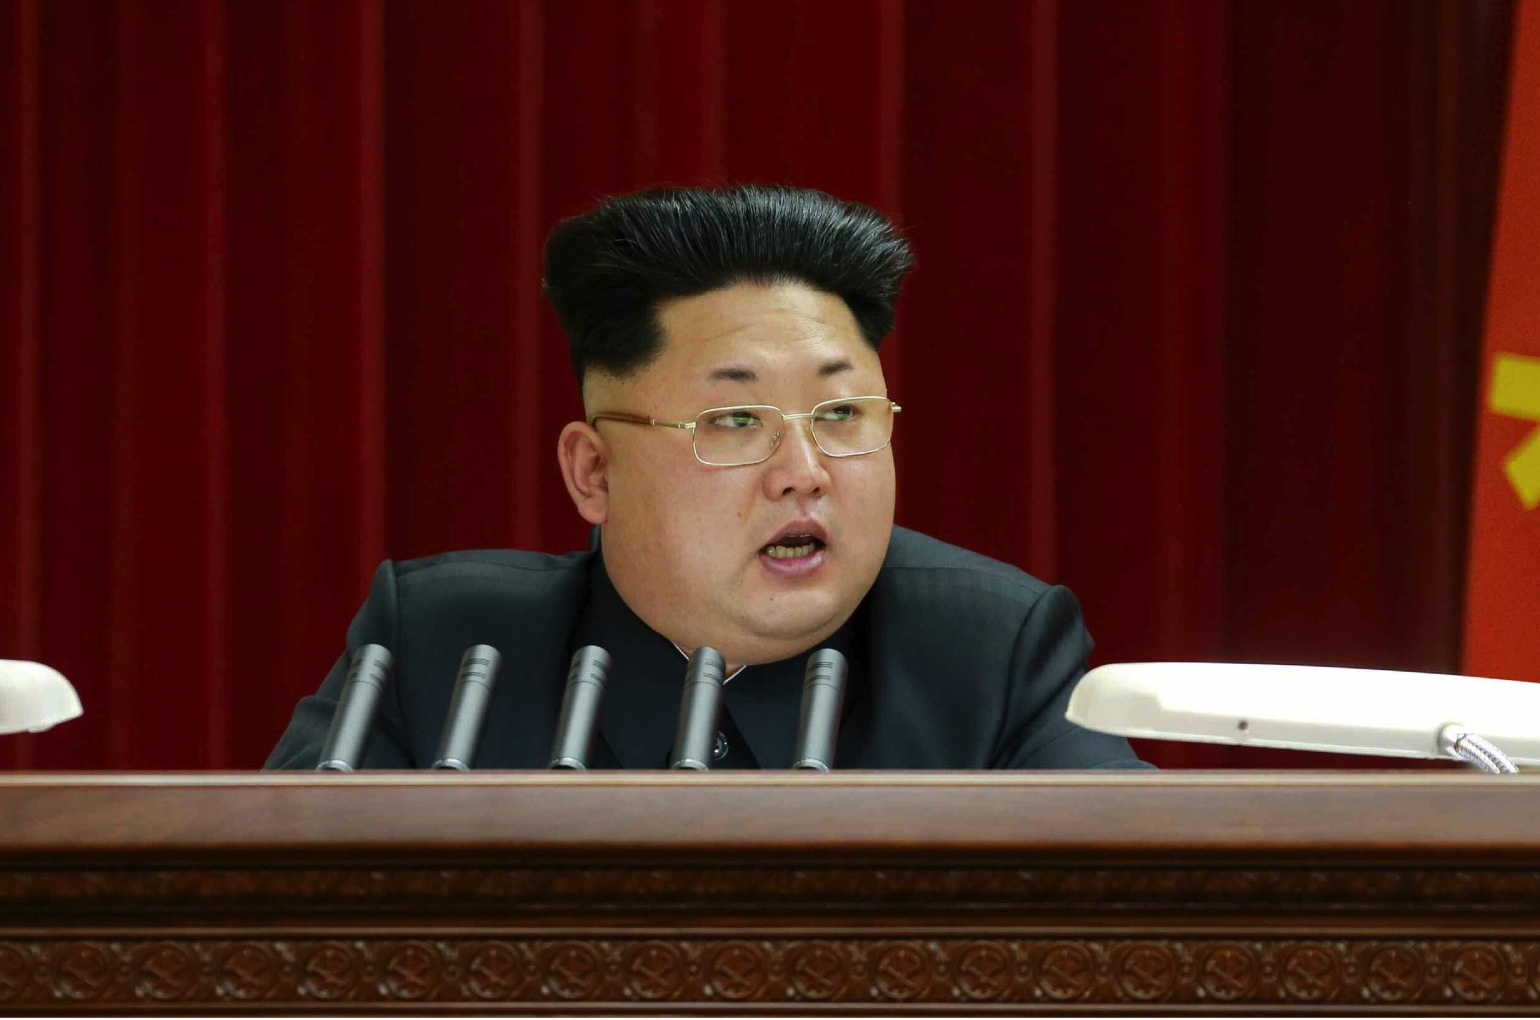 Kim Jong Un addresses an expanded meeting of the WPK Political Bureau in Pyongyang on February 18, 2014 (Photo: Rodong Sinmun).